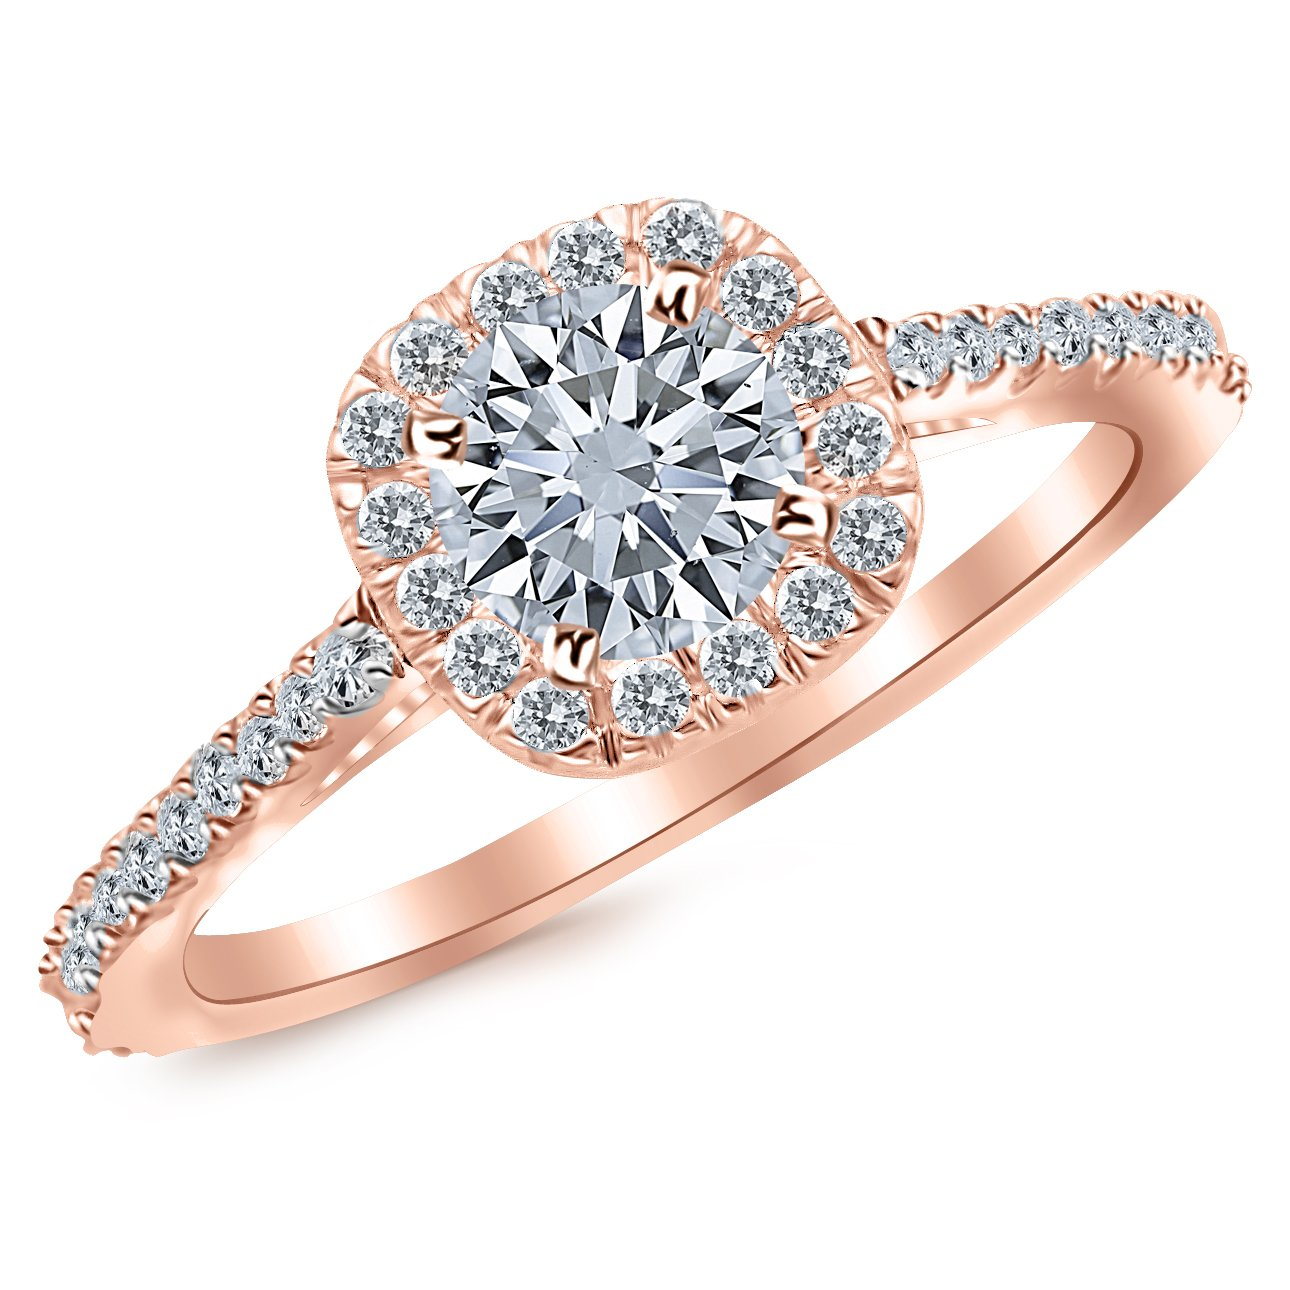 0.8 Carat Gorgeous Classic Cushion Halo Style Diamond Engagement Ring 14K Rose Gold with a 0.45 Carat J-K I2 Center